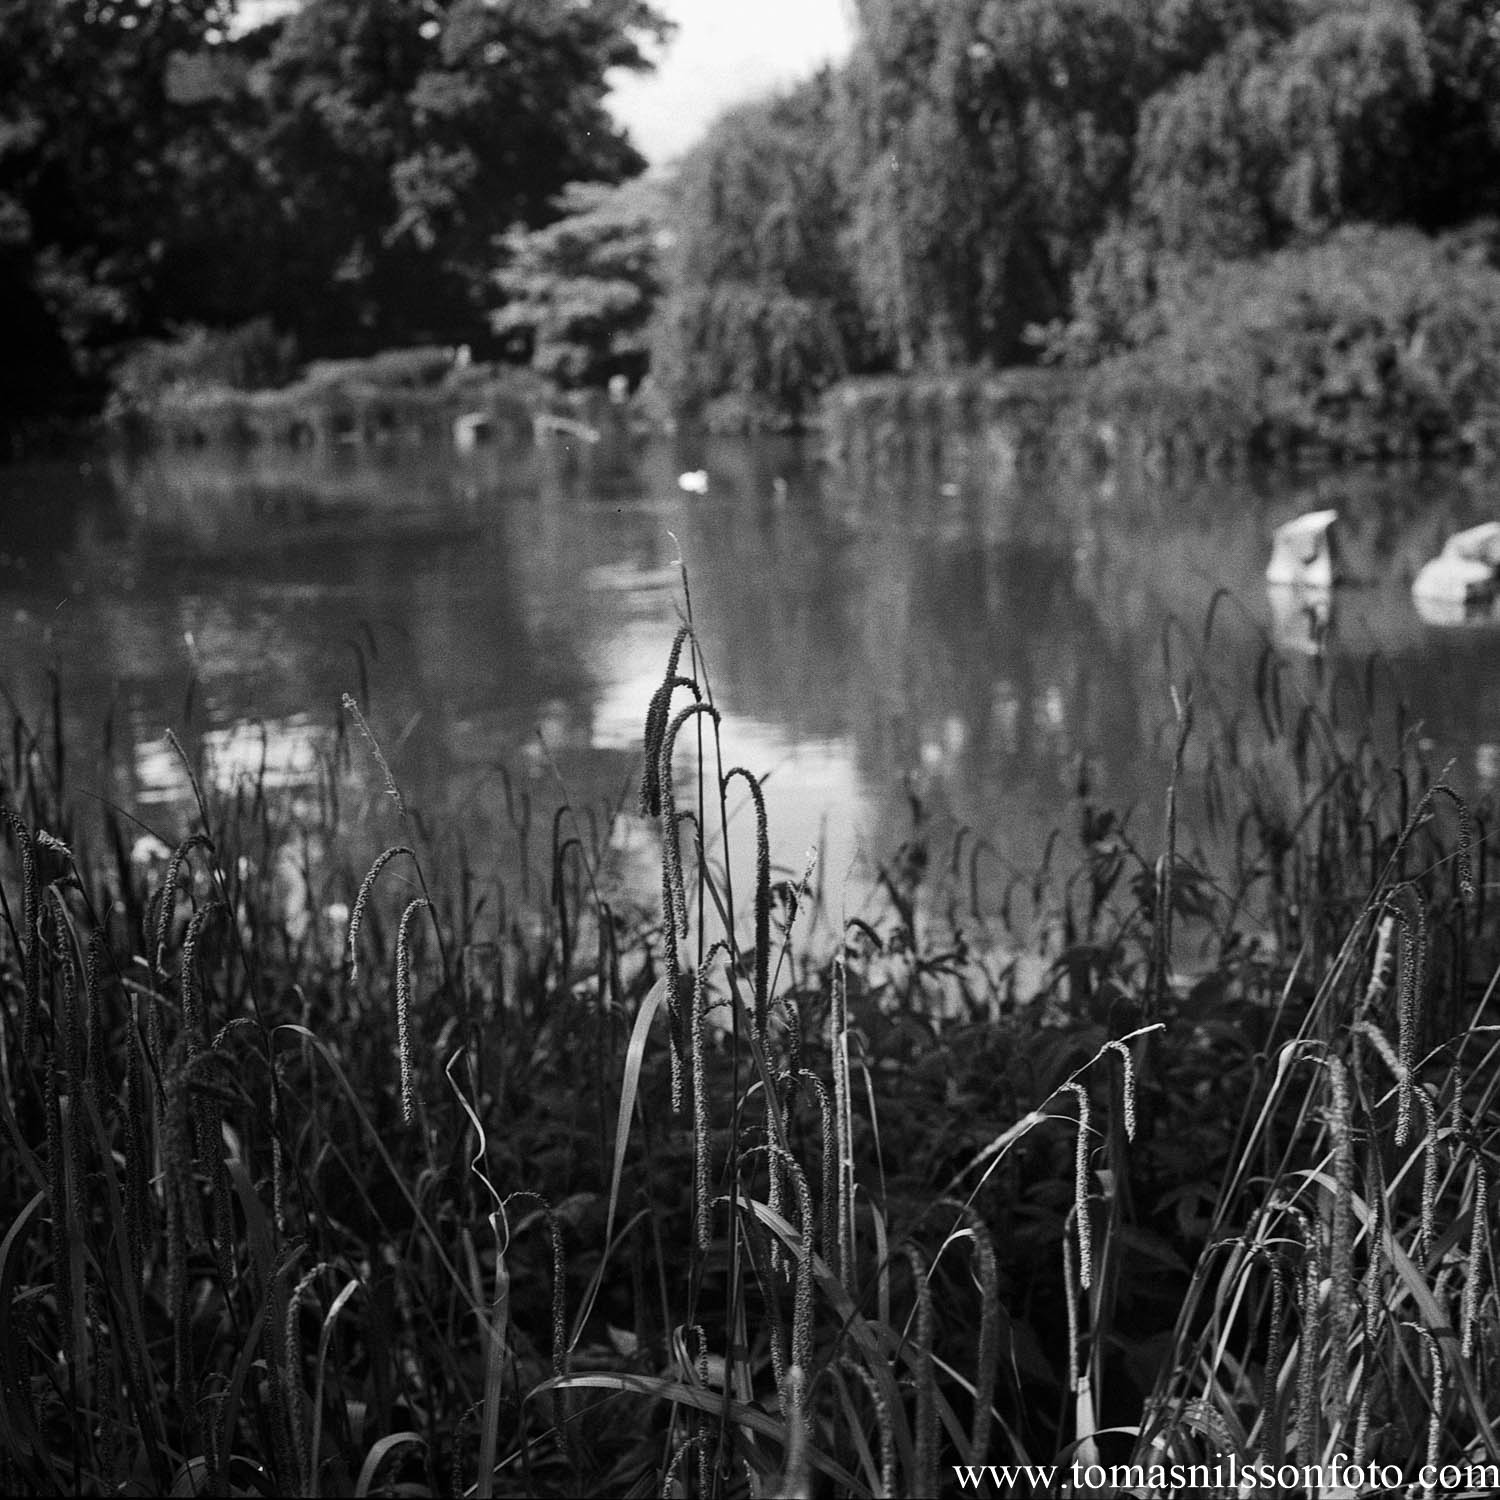 Day 195 - July 14: At the pond